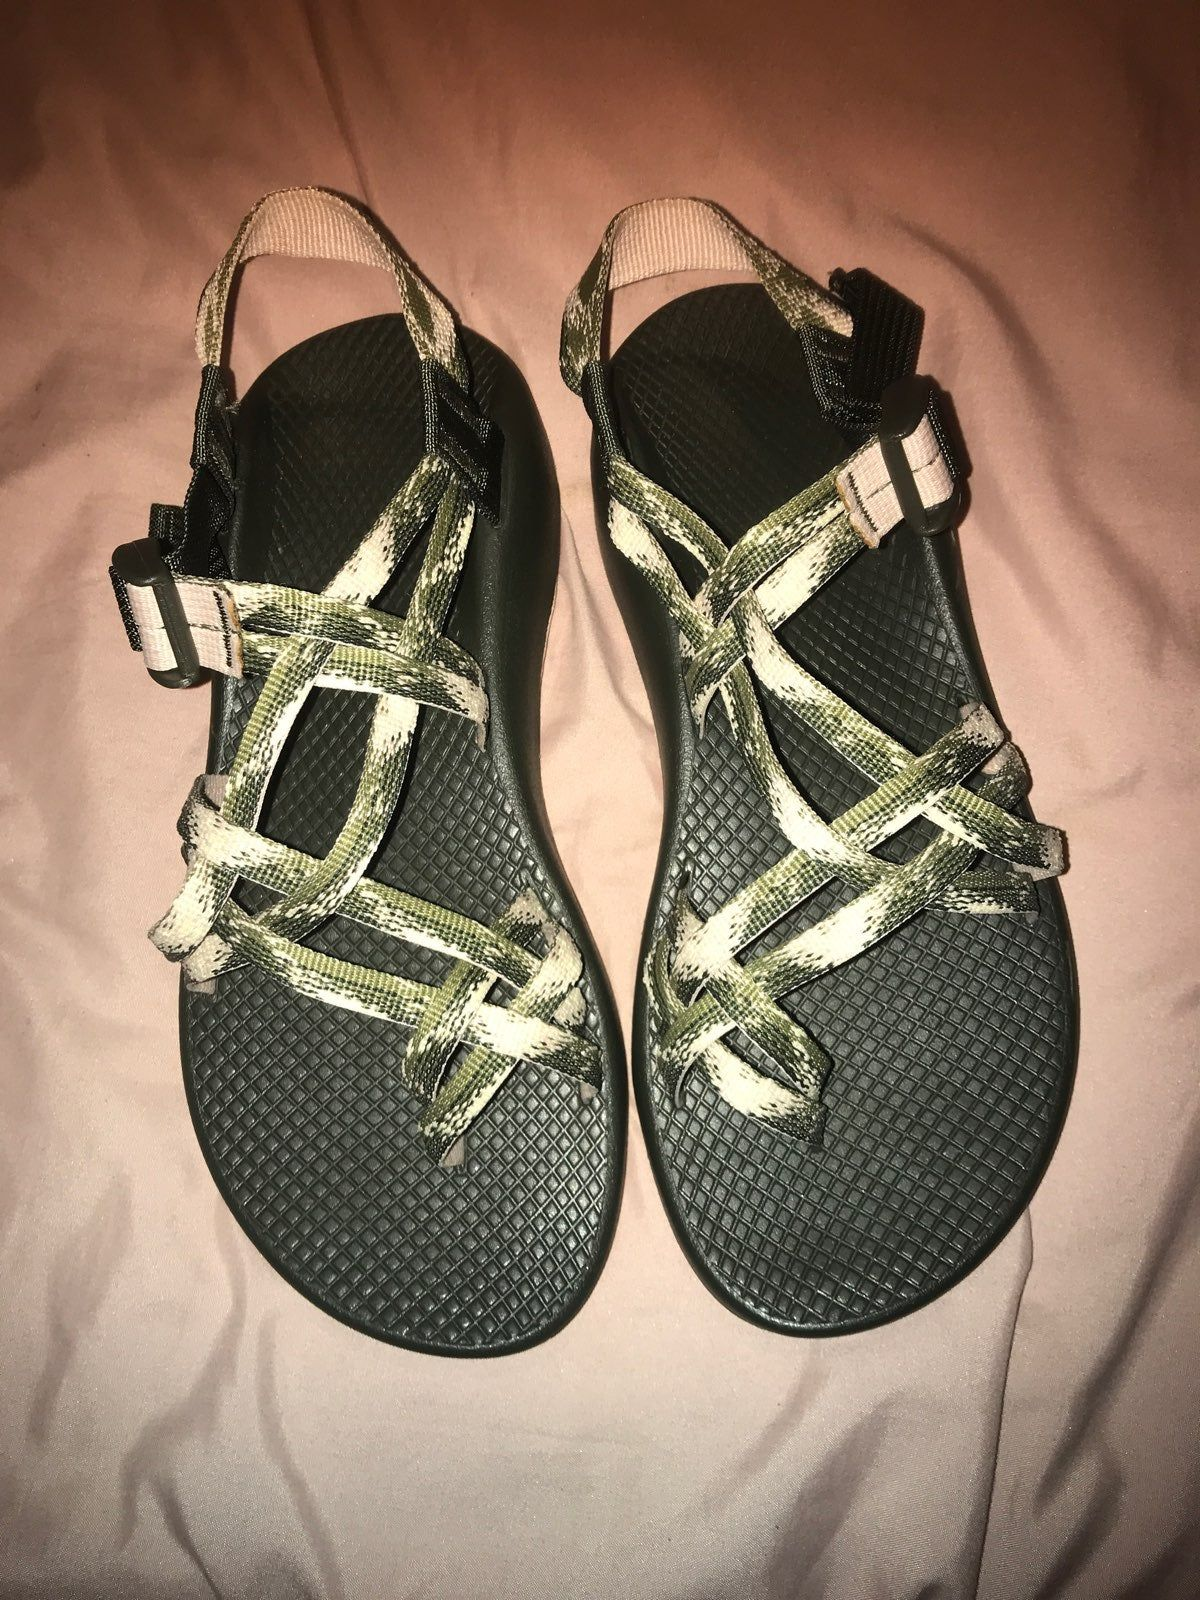 Chacos sandals